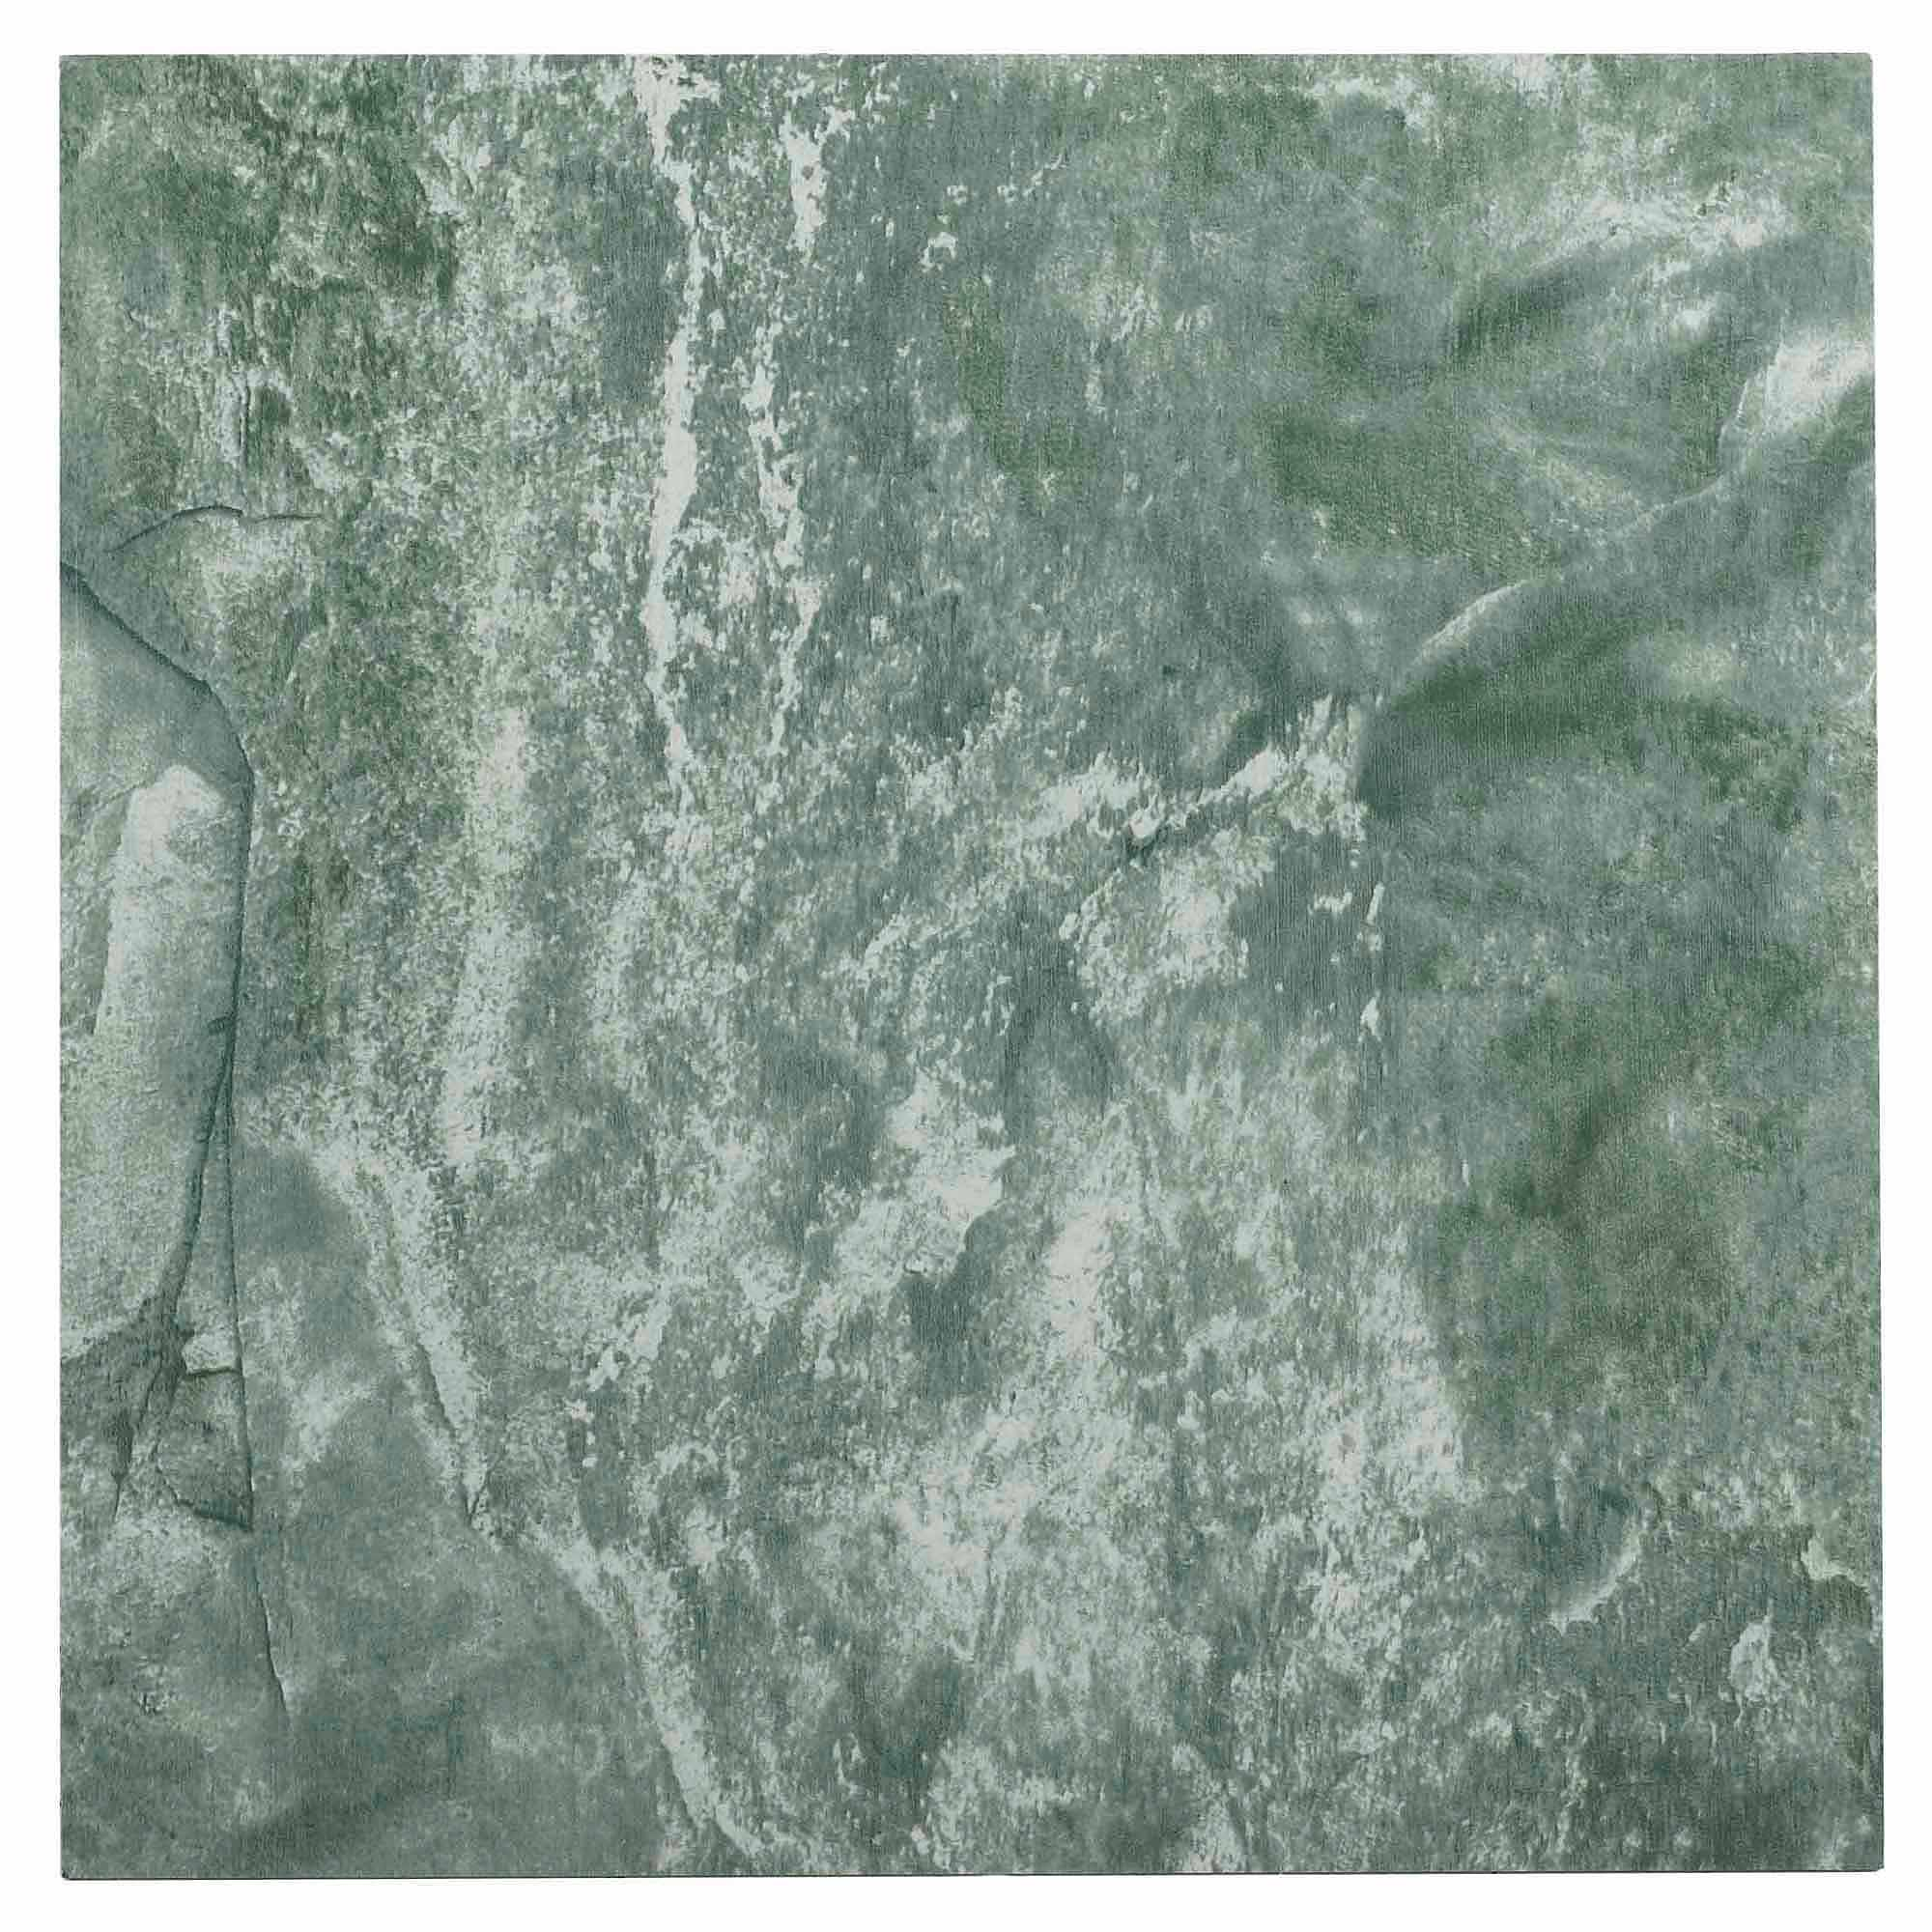 Nexus verde marble vein 12x12 self adhesive vinyl floor tile 20 nexus verde marble vein 12x12 self adhesive vinyl floor tile 20 tiles20 sqft walmart dailygadgetfo Choice Image